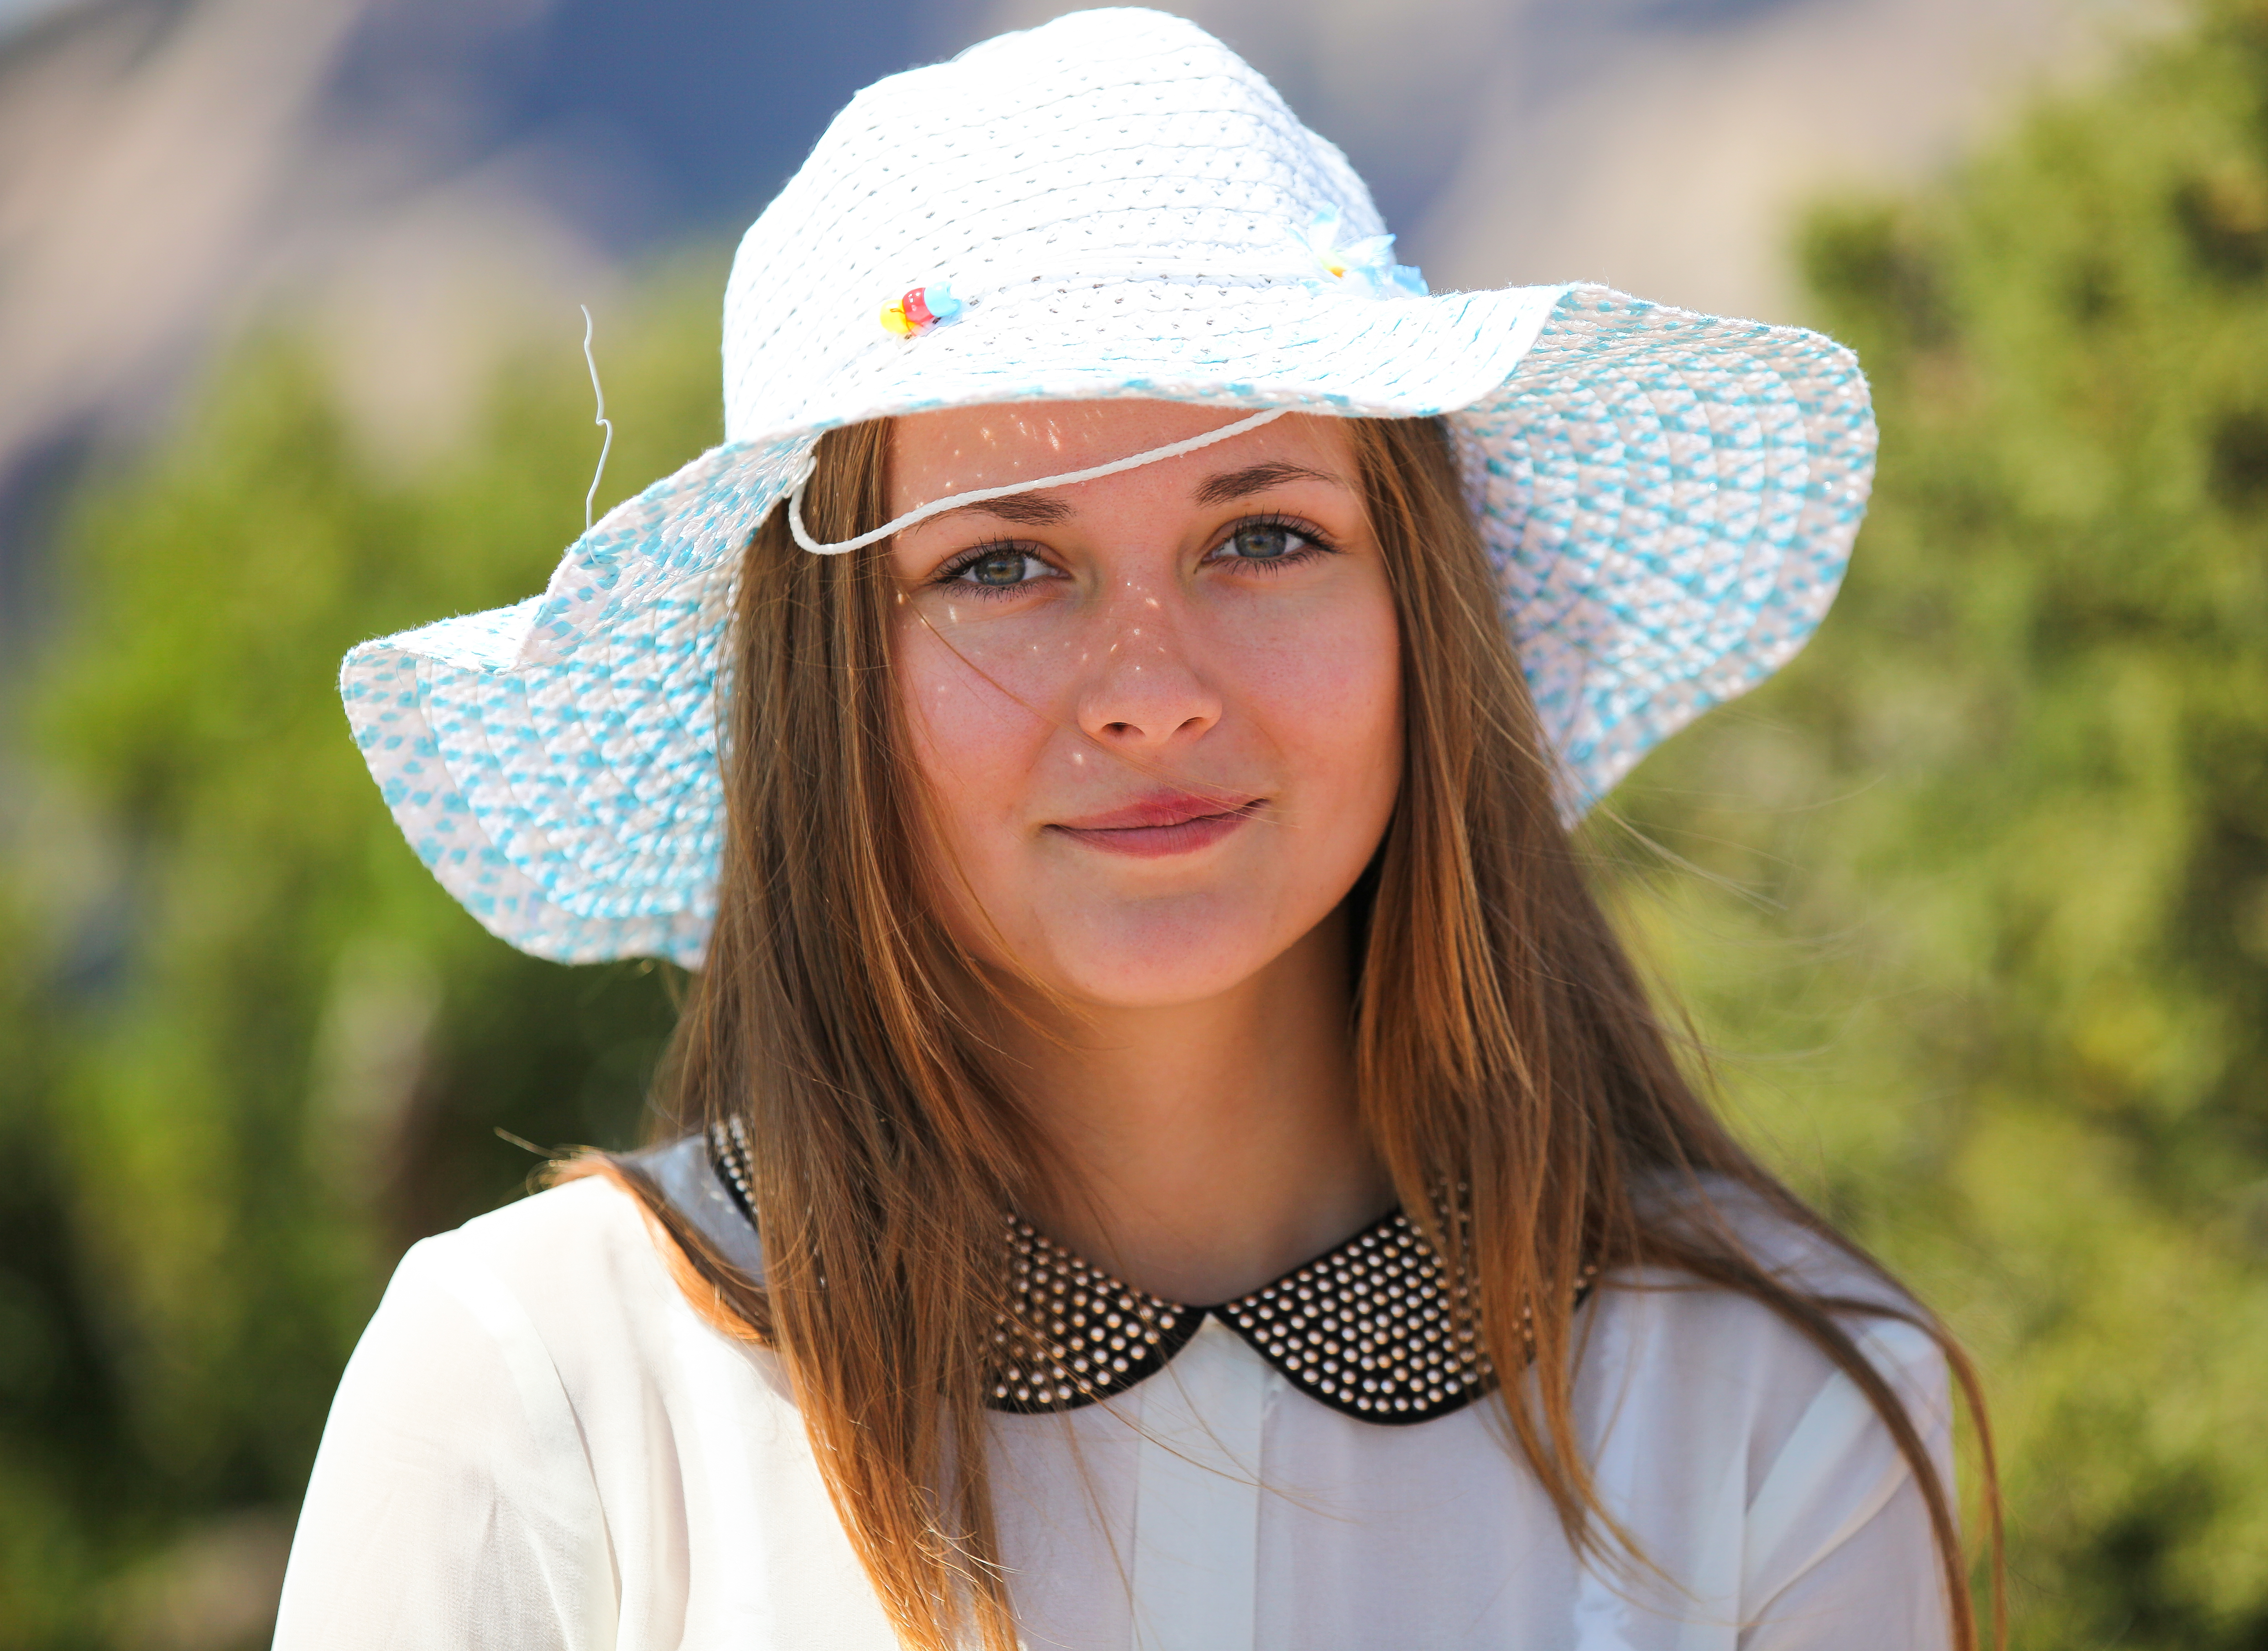 a cute Catholic girl in a hat photographed in August 2013, photo 2